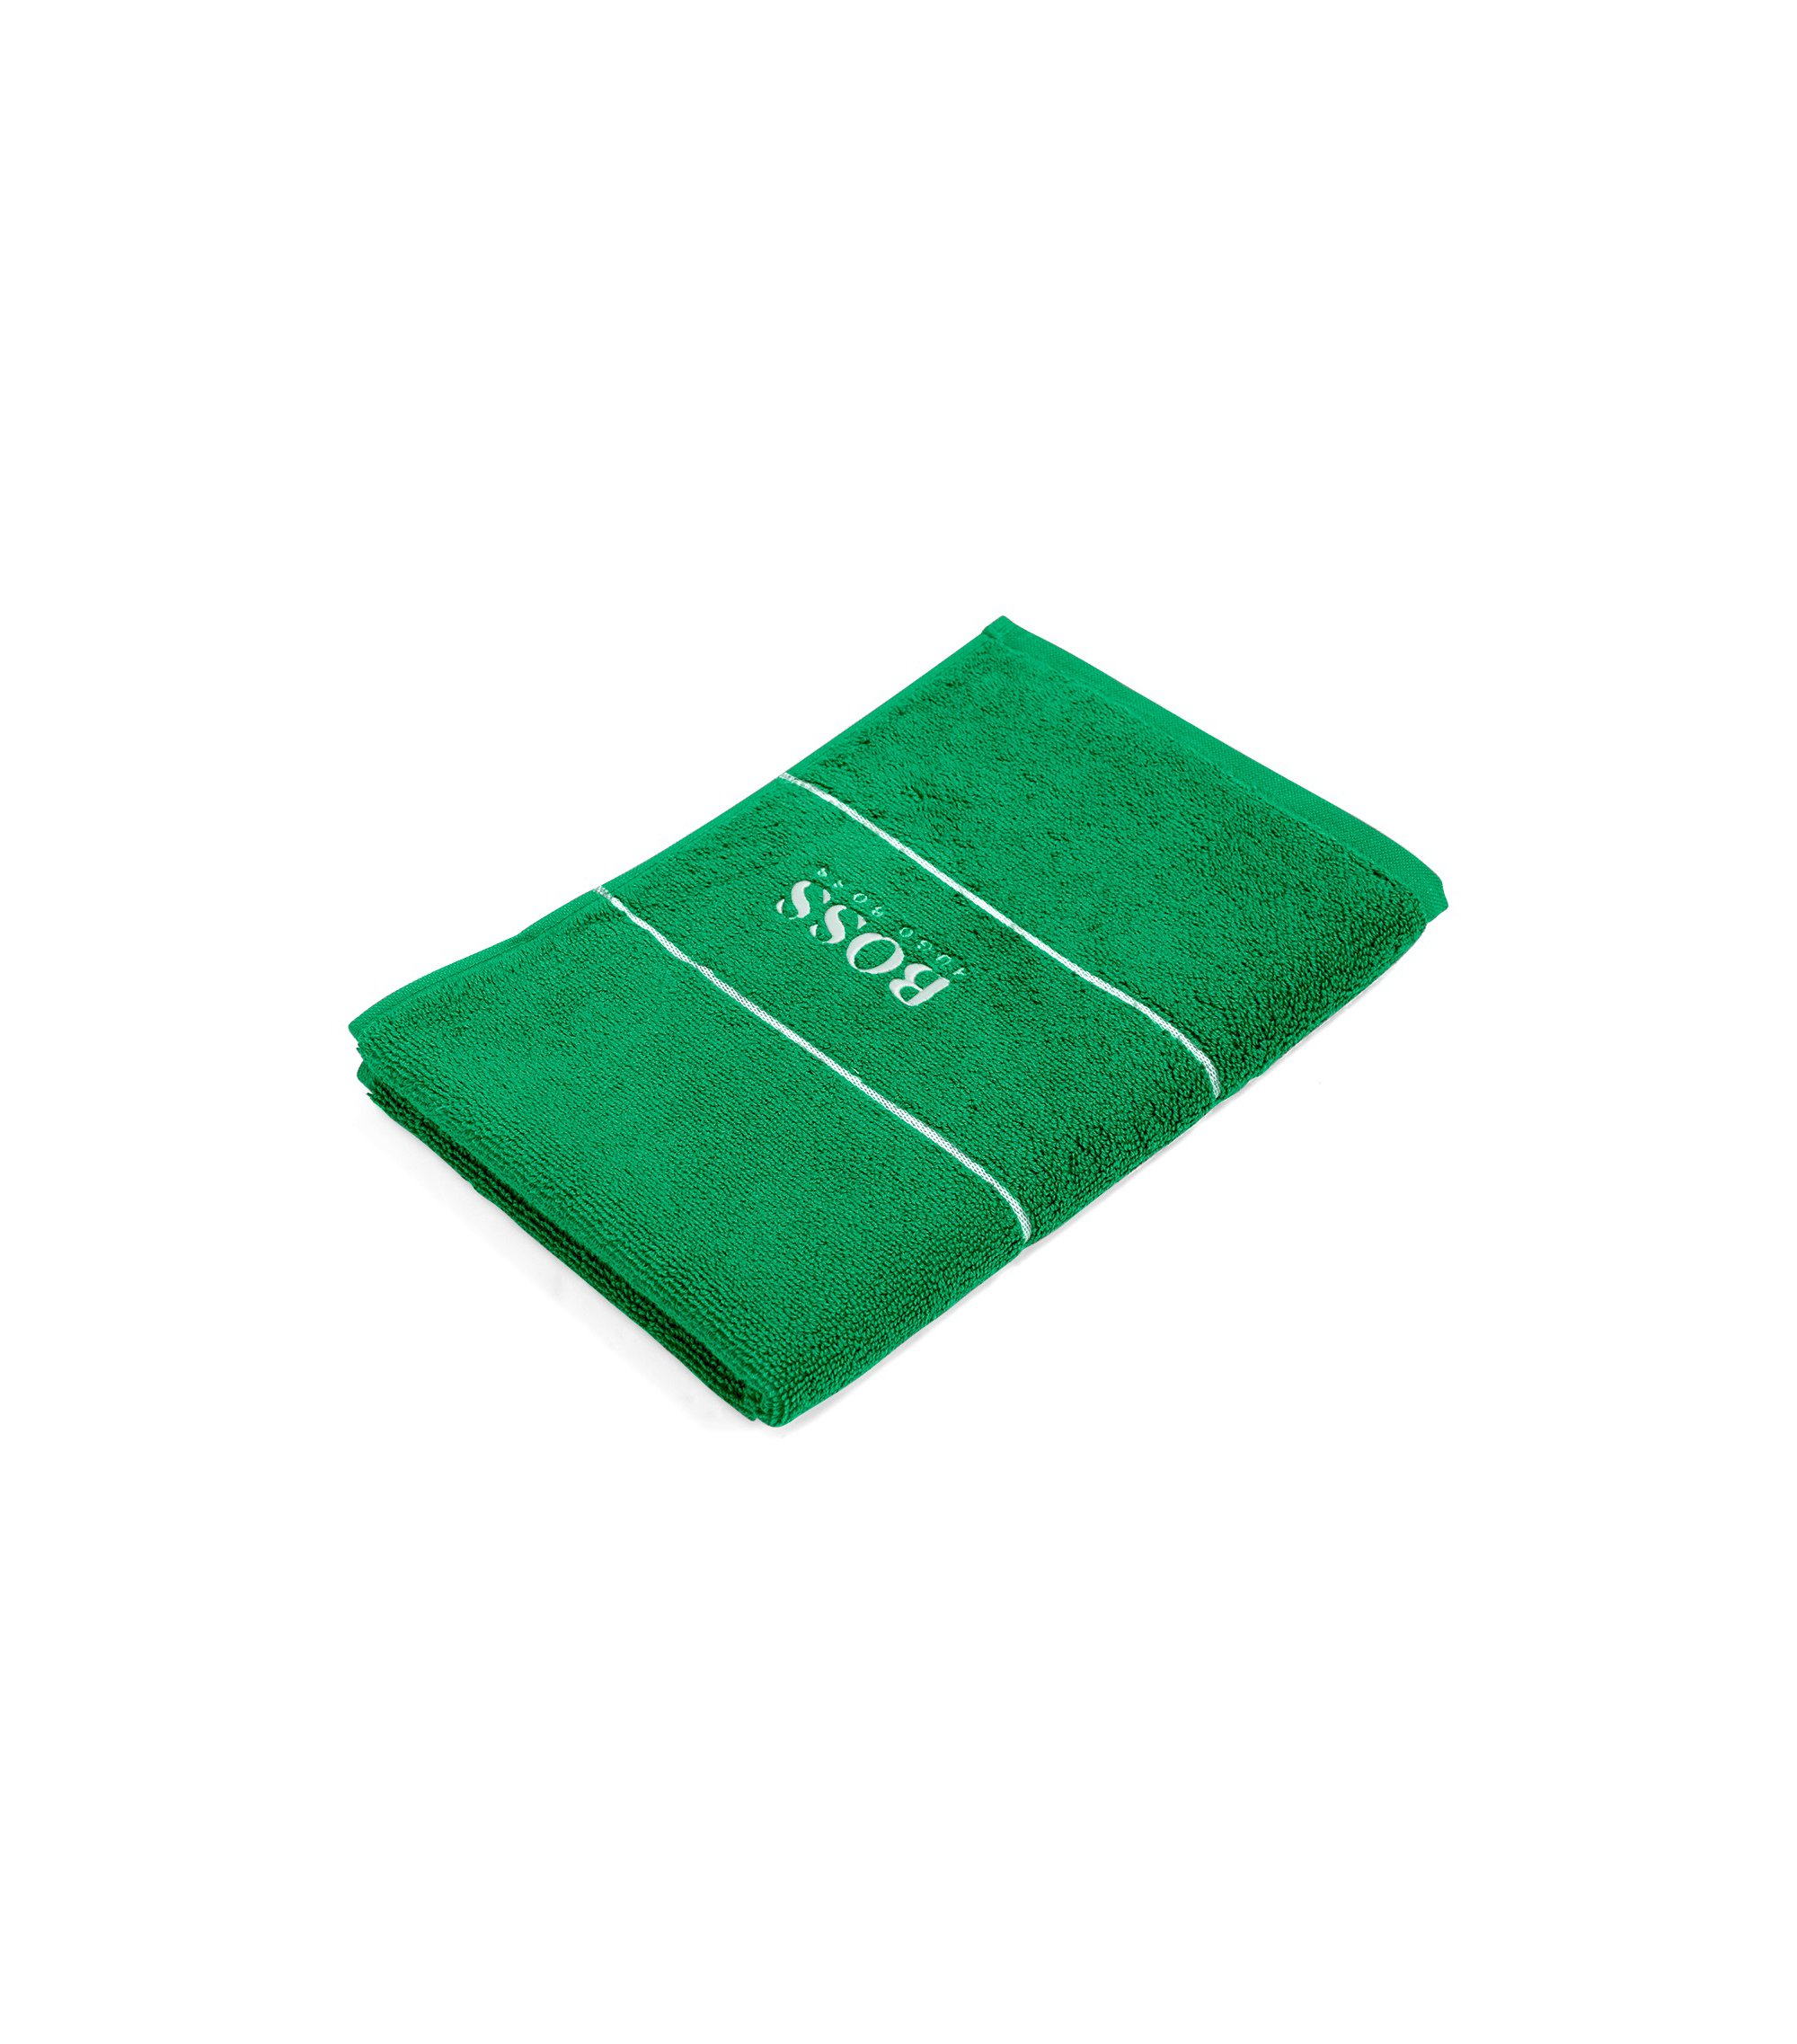 Finest Egyptian cotton guest towel with logo border, Green